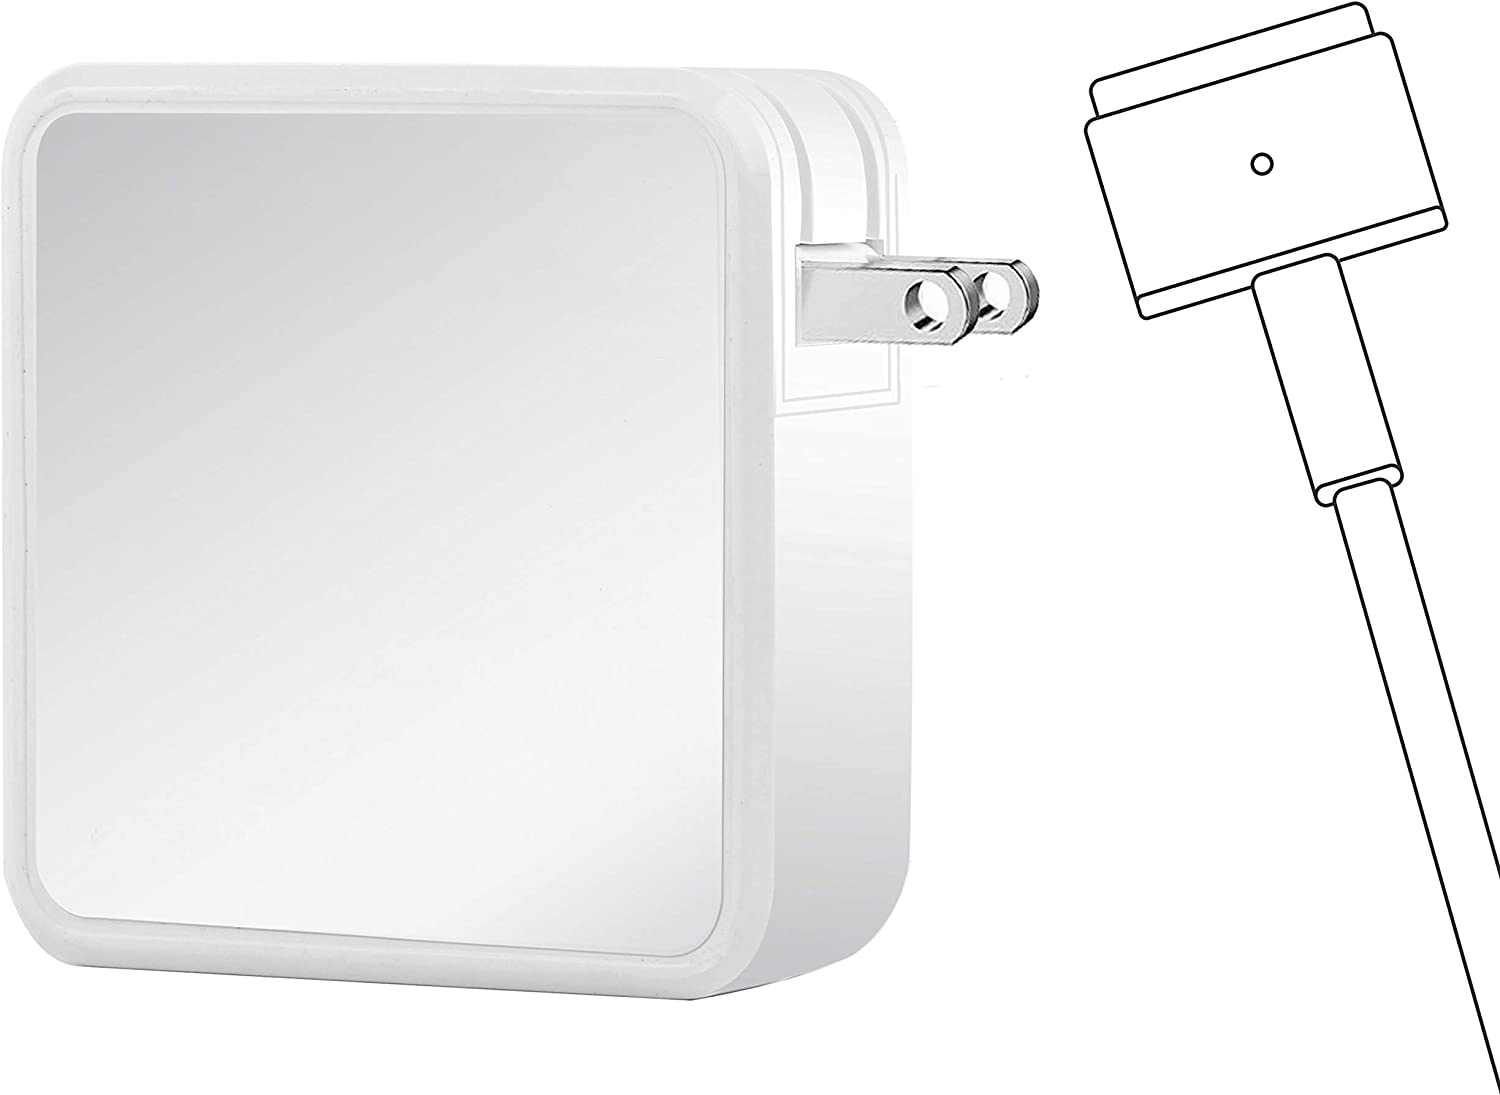 Charger for Mac Book Air, AC 45W T-Tip Magnetic Power Adapter for 11/13 inch Mac Book Air (After Mid 2012)